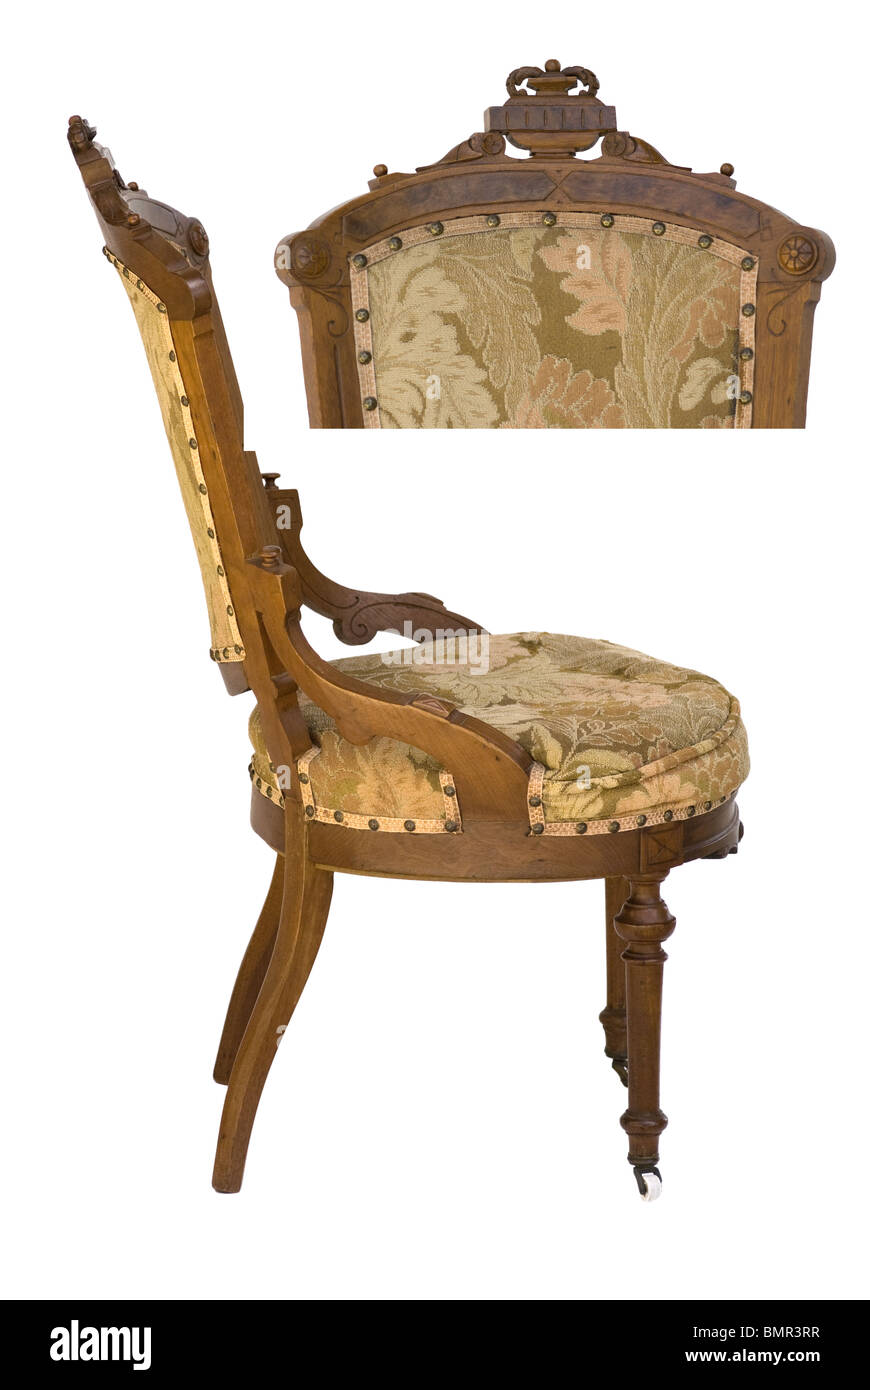 Eastlake Victorian period side & top view of antique upholstered wood carved chair - Stock Image